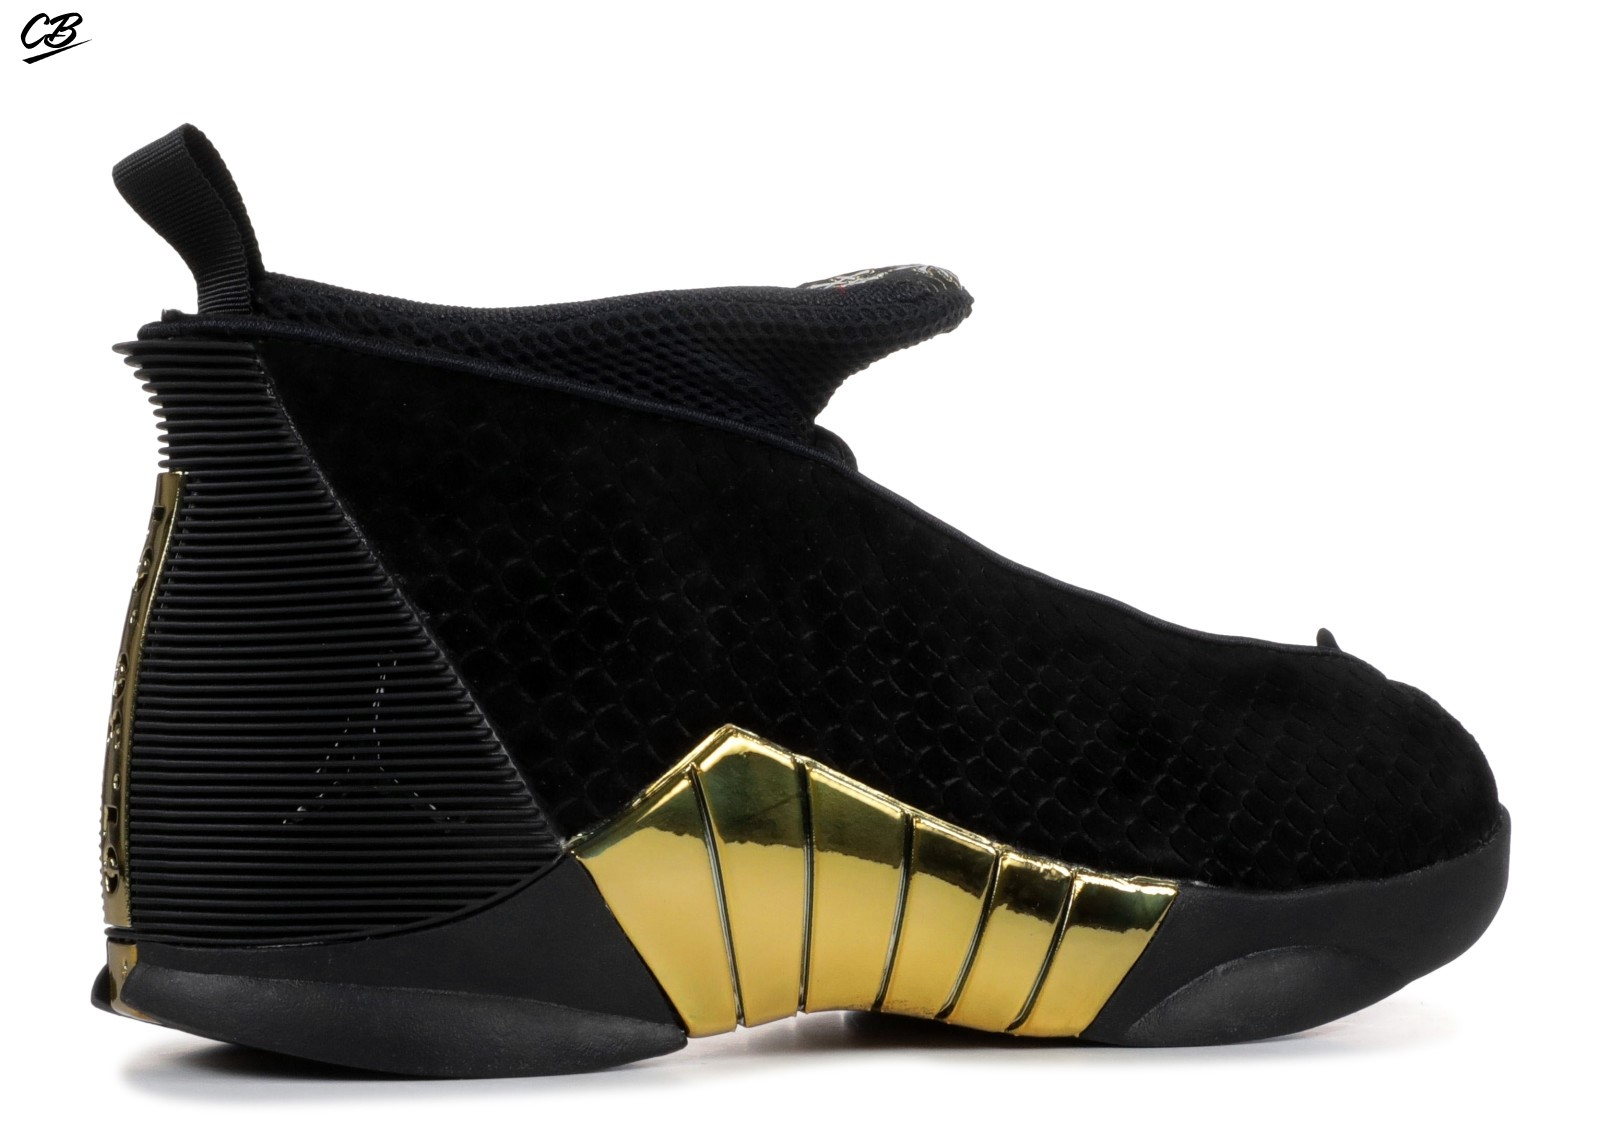 Air Jordan 15 Retro Doernbecher 2018 (Gs) Noir Or (nv7110-017)